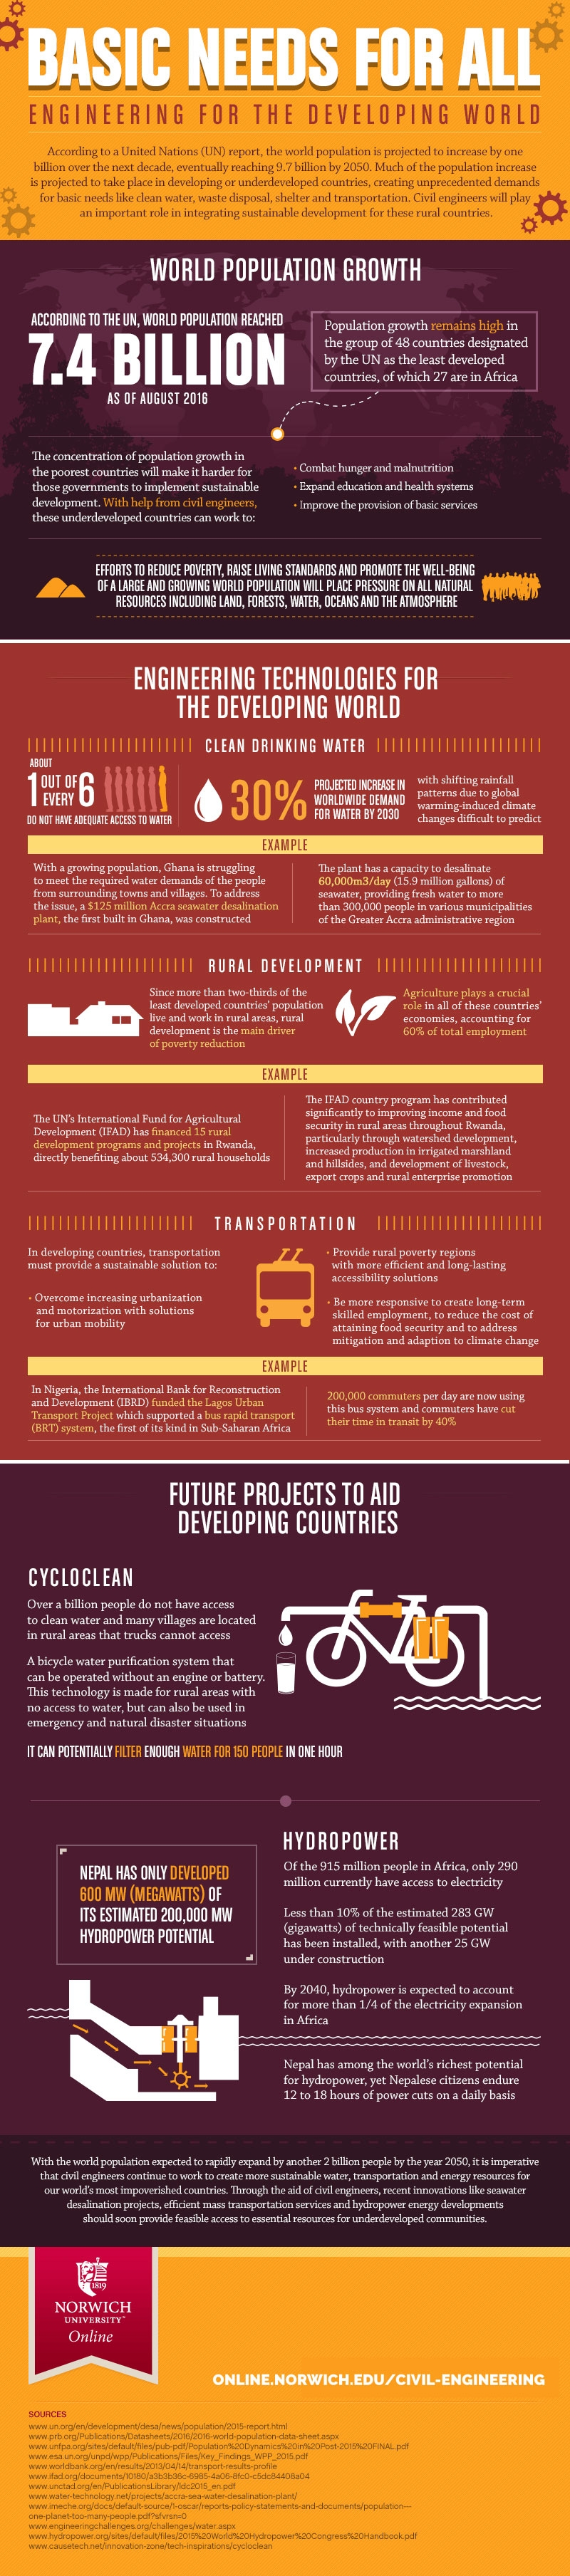 engineering for the developing world infographic image